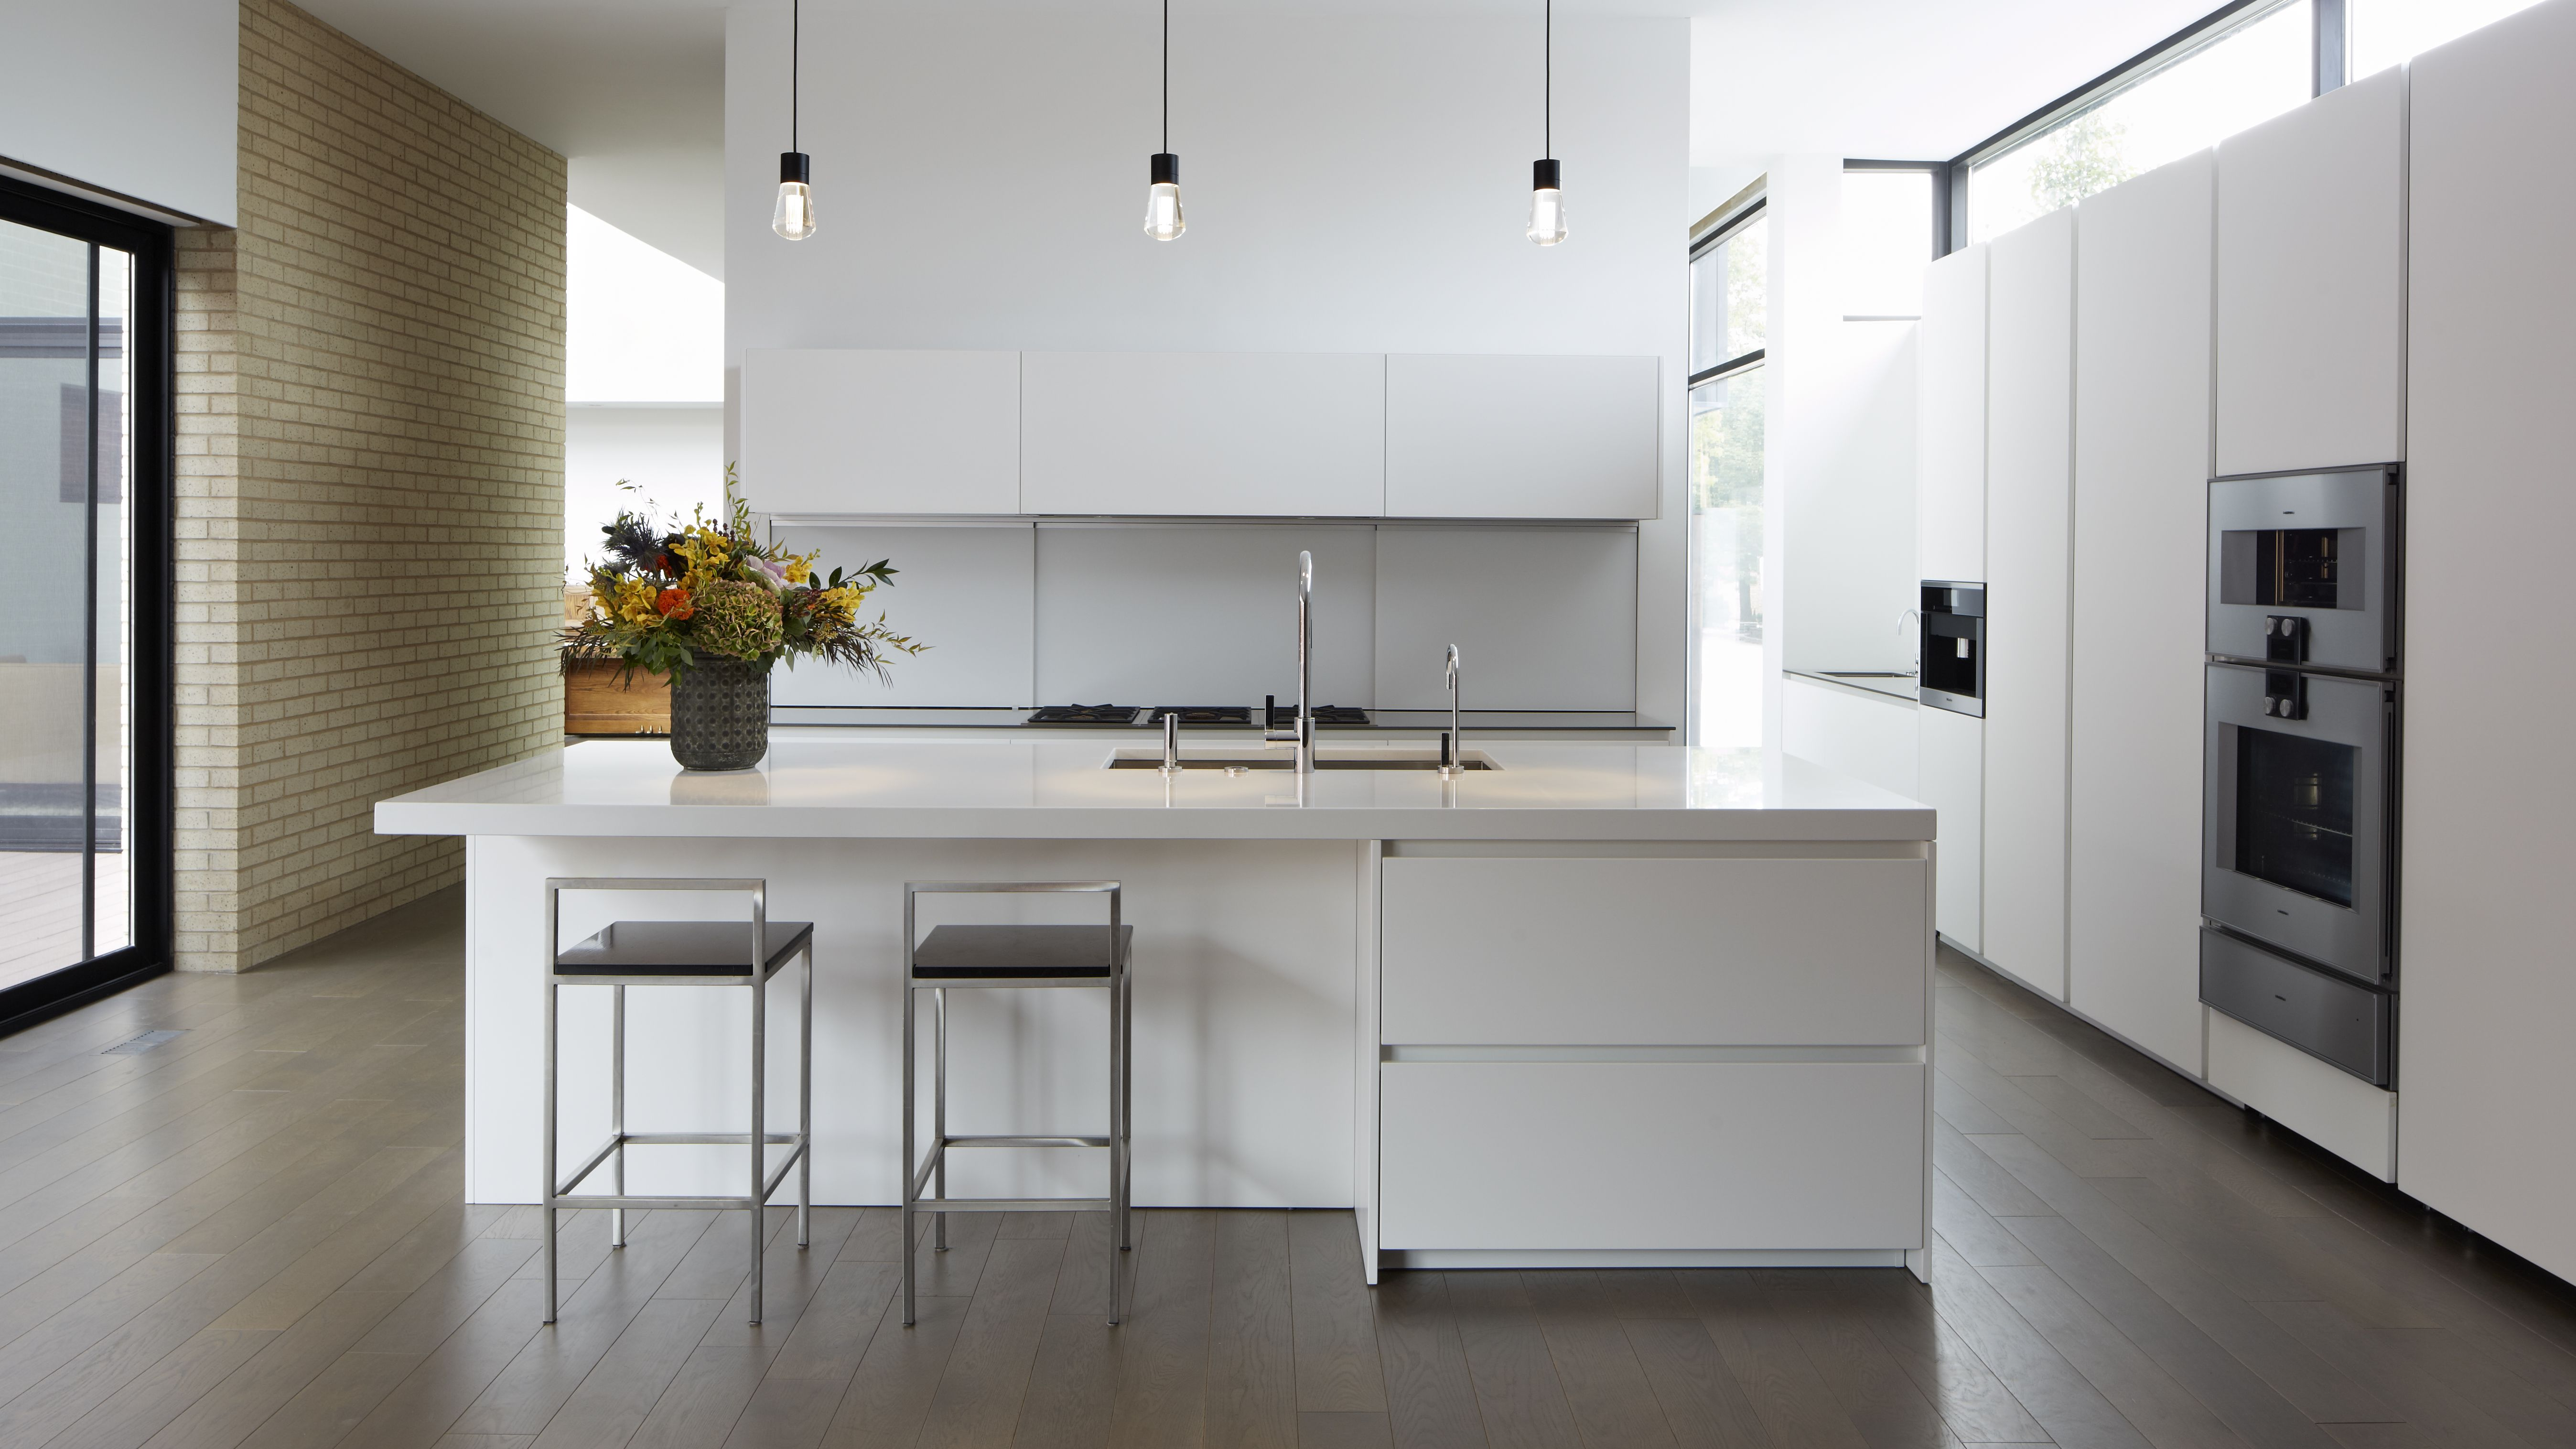 Minimalist Kitchens To Inspire You,Patch Work Back Side Simple Blouse Back Neck Designs Images